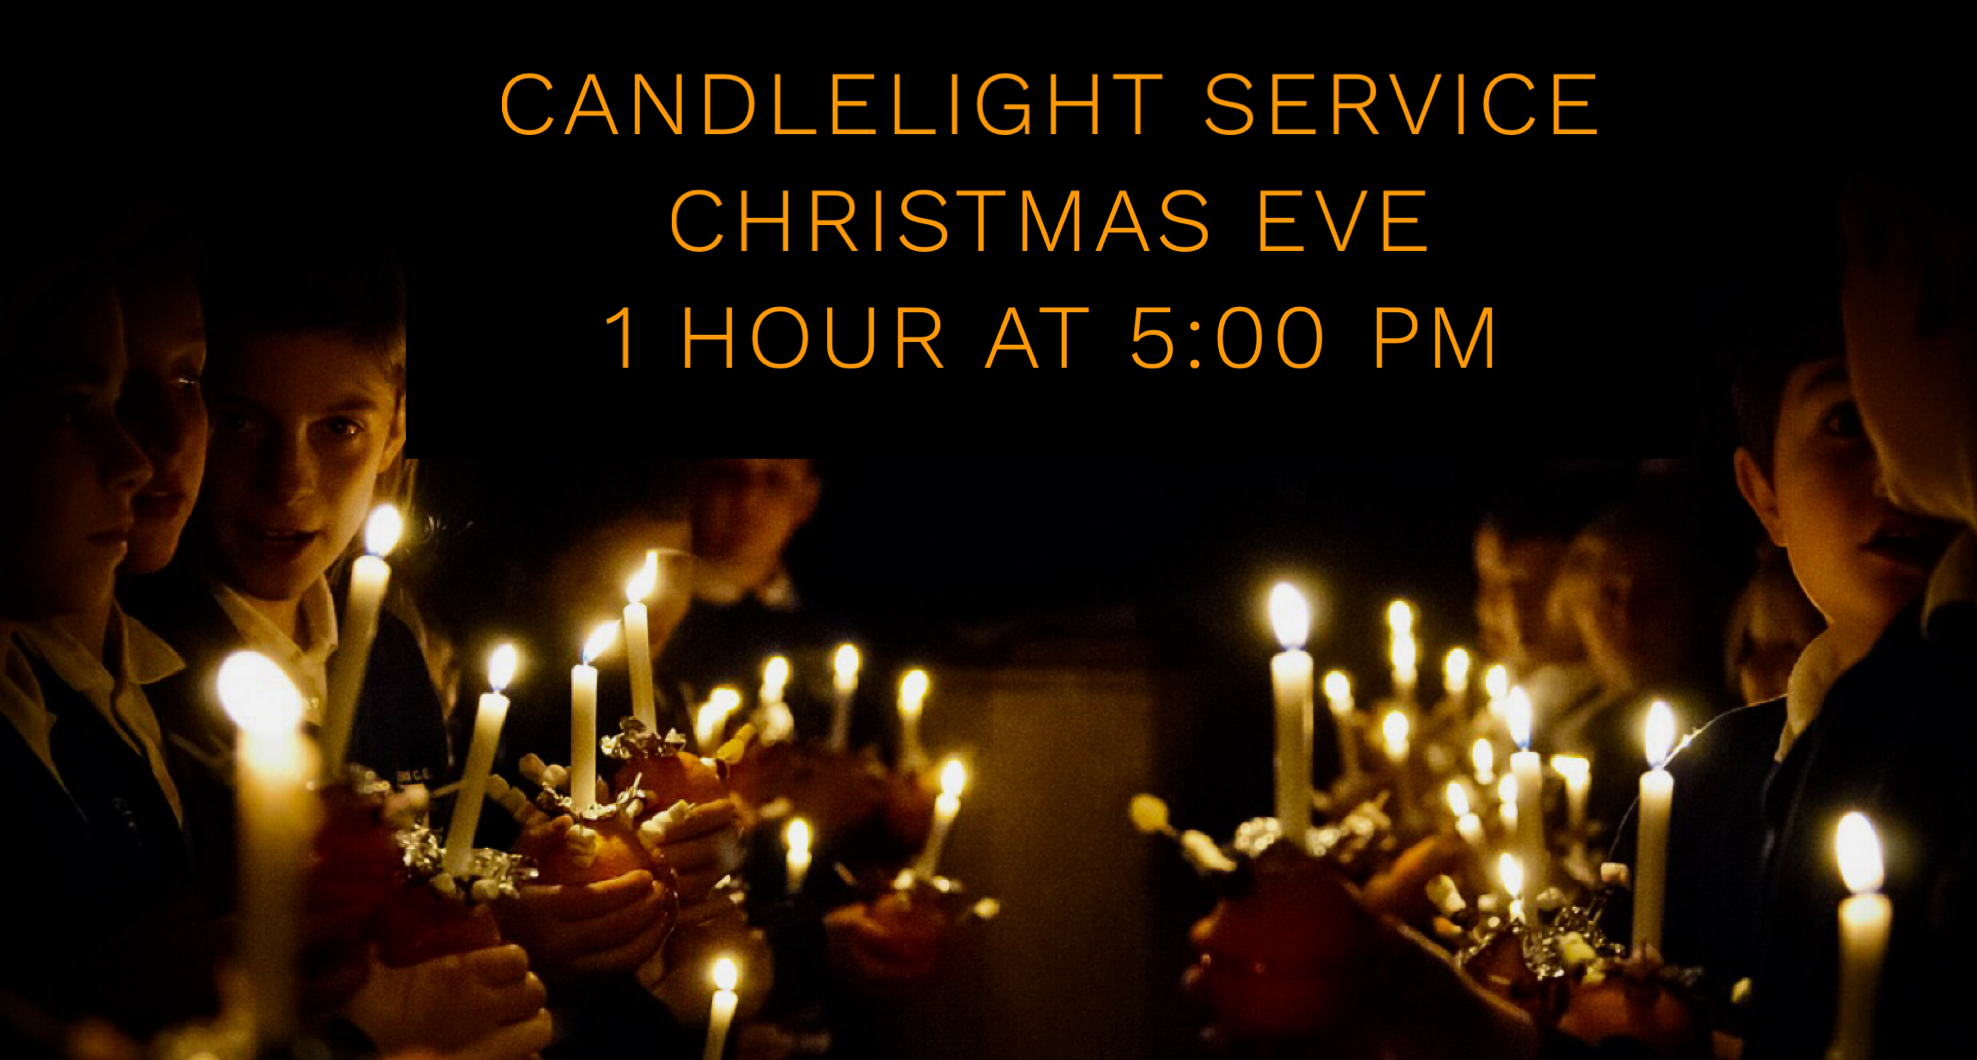 candlelight service slide for video announcements.png